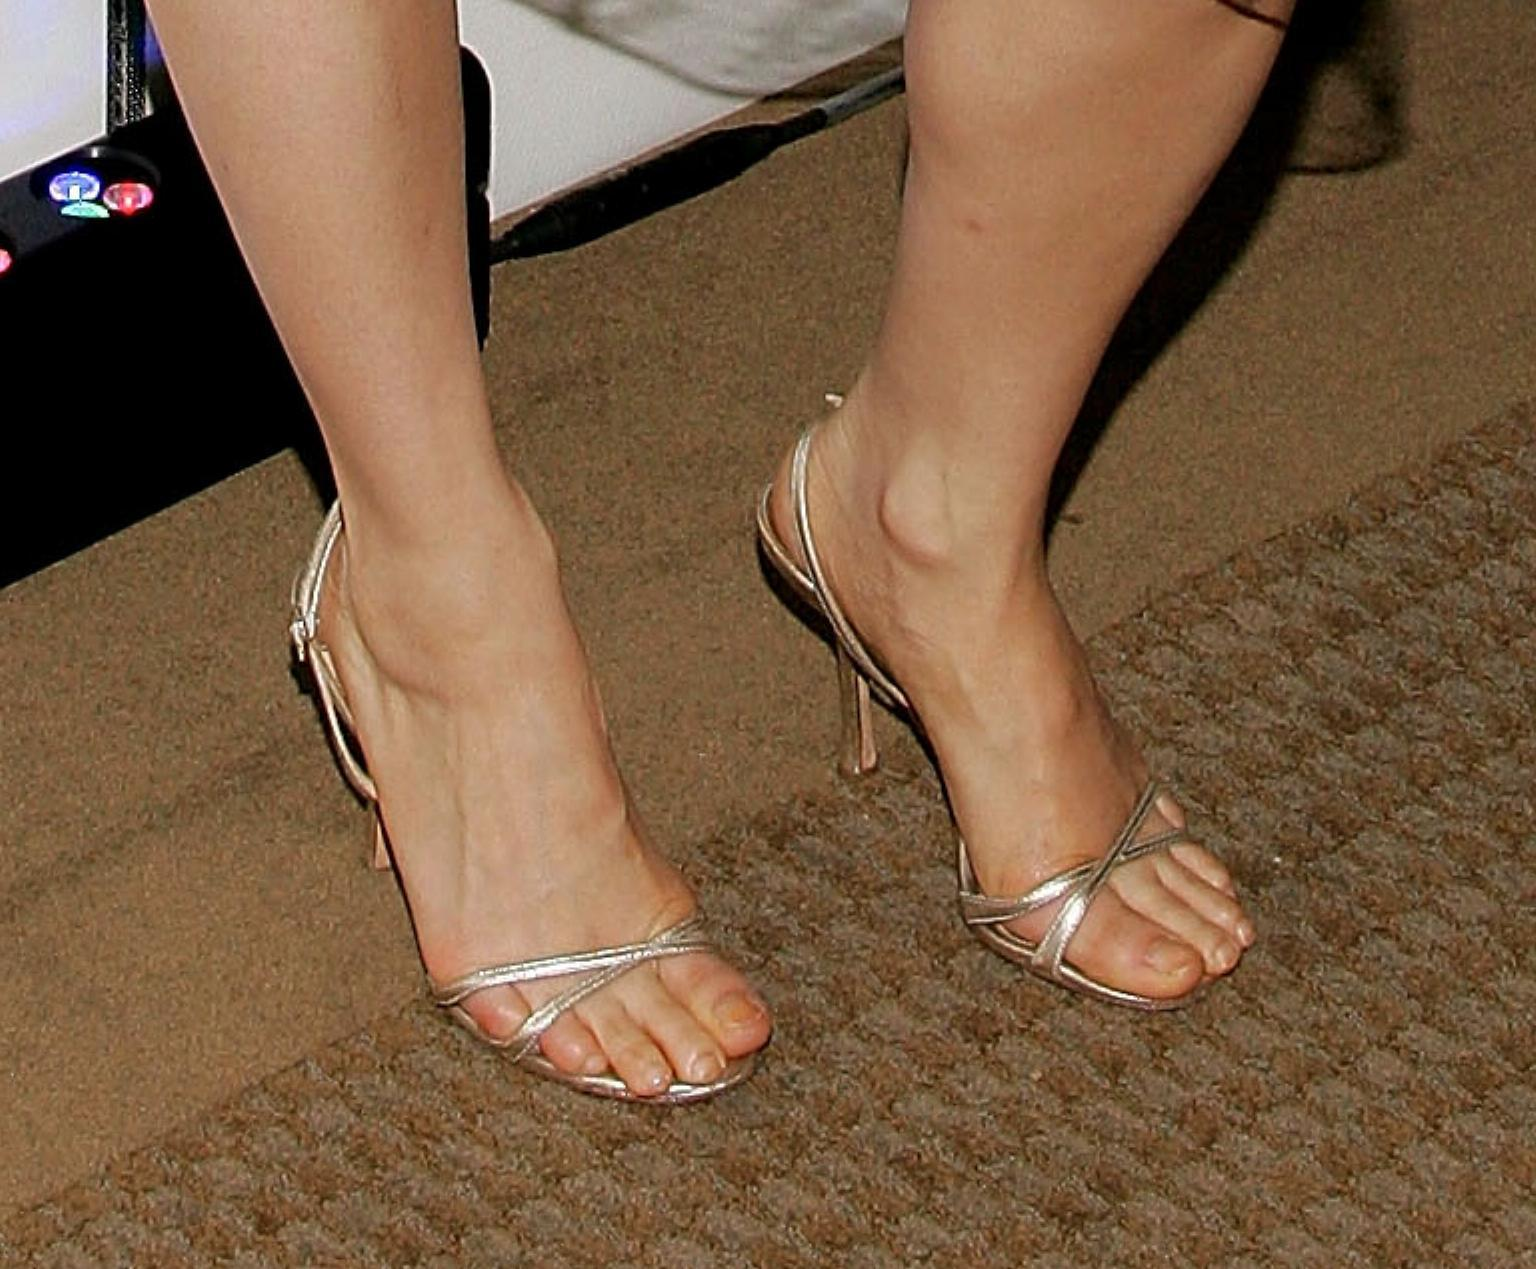 Hot Legs And Feet Pictures Page